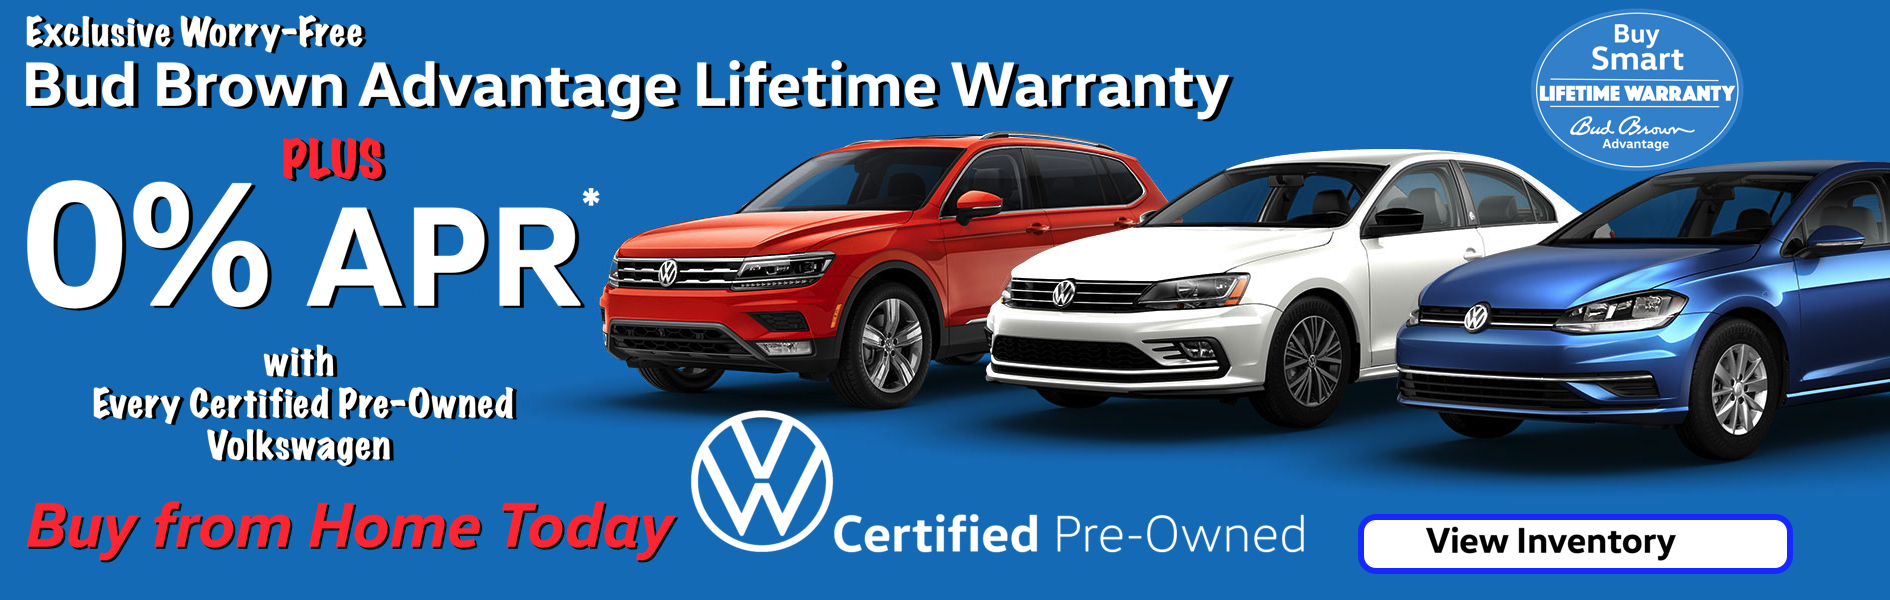 Get 0% APR plus Lifetime Warranty only at Bud Brown VW